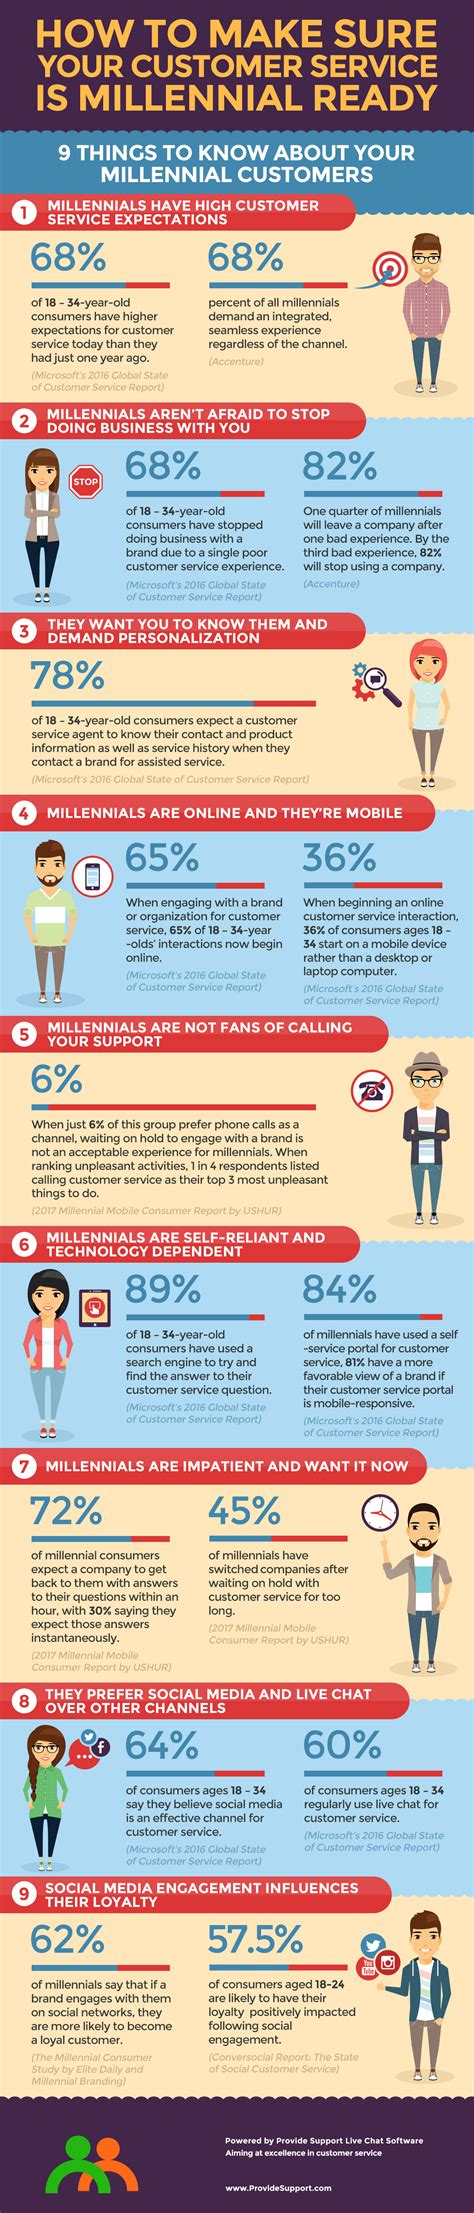 make your a service 9 things to to make your customer service millennial ready